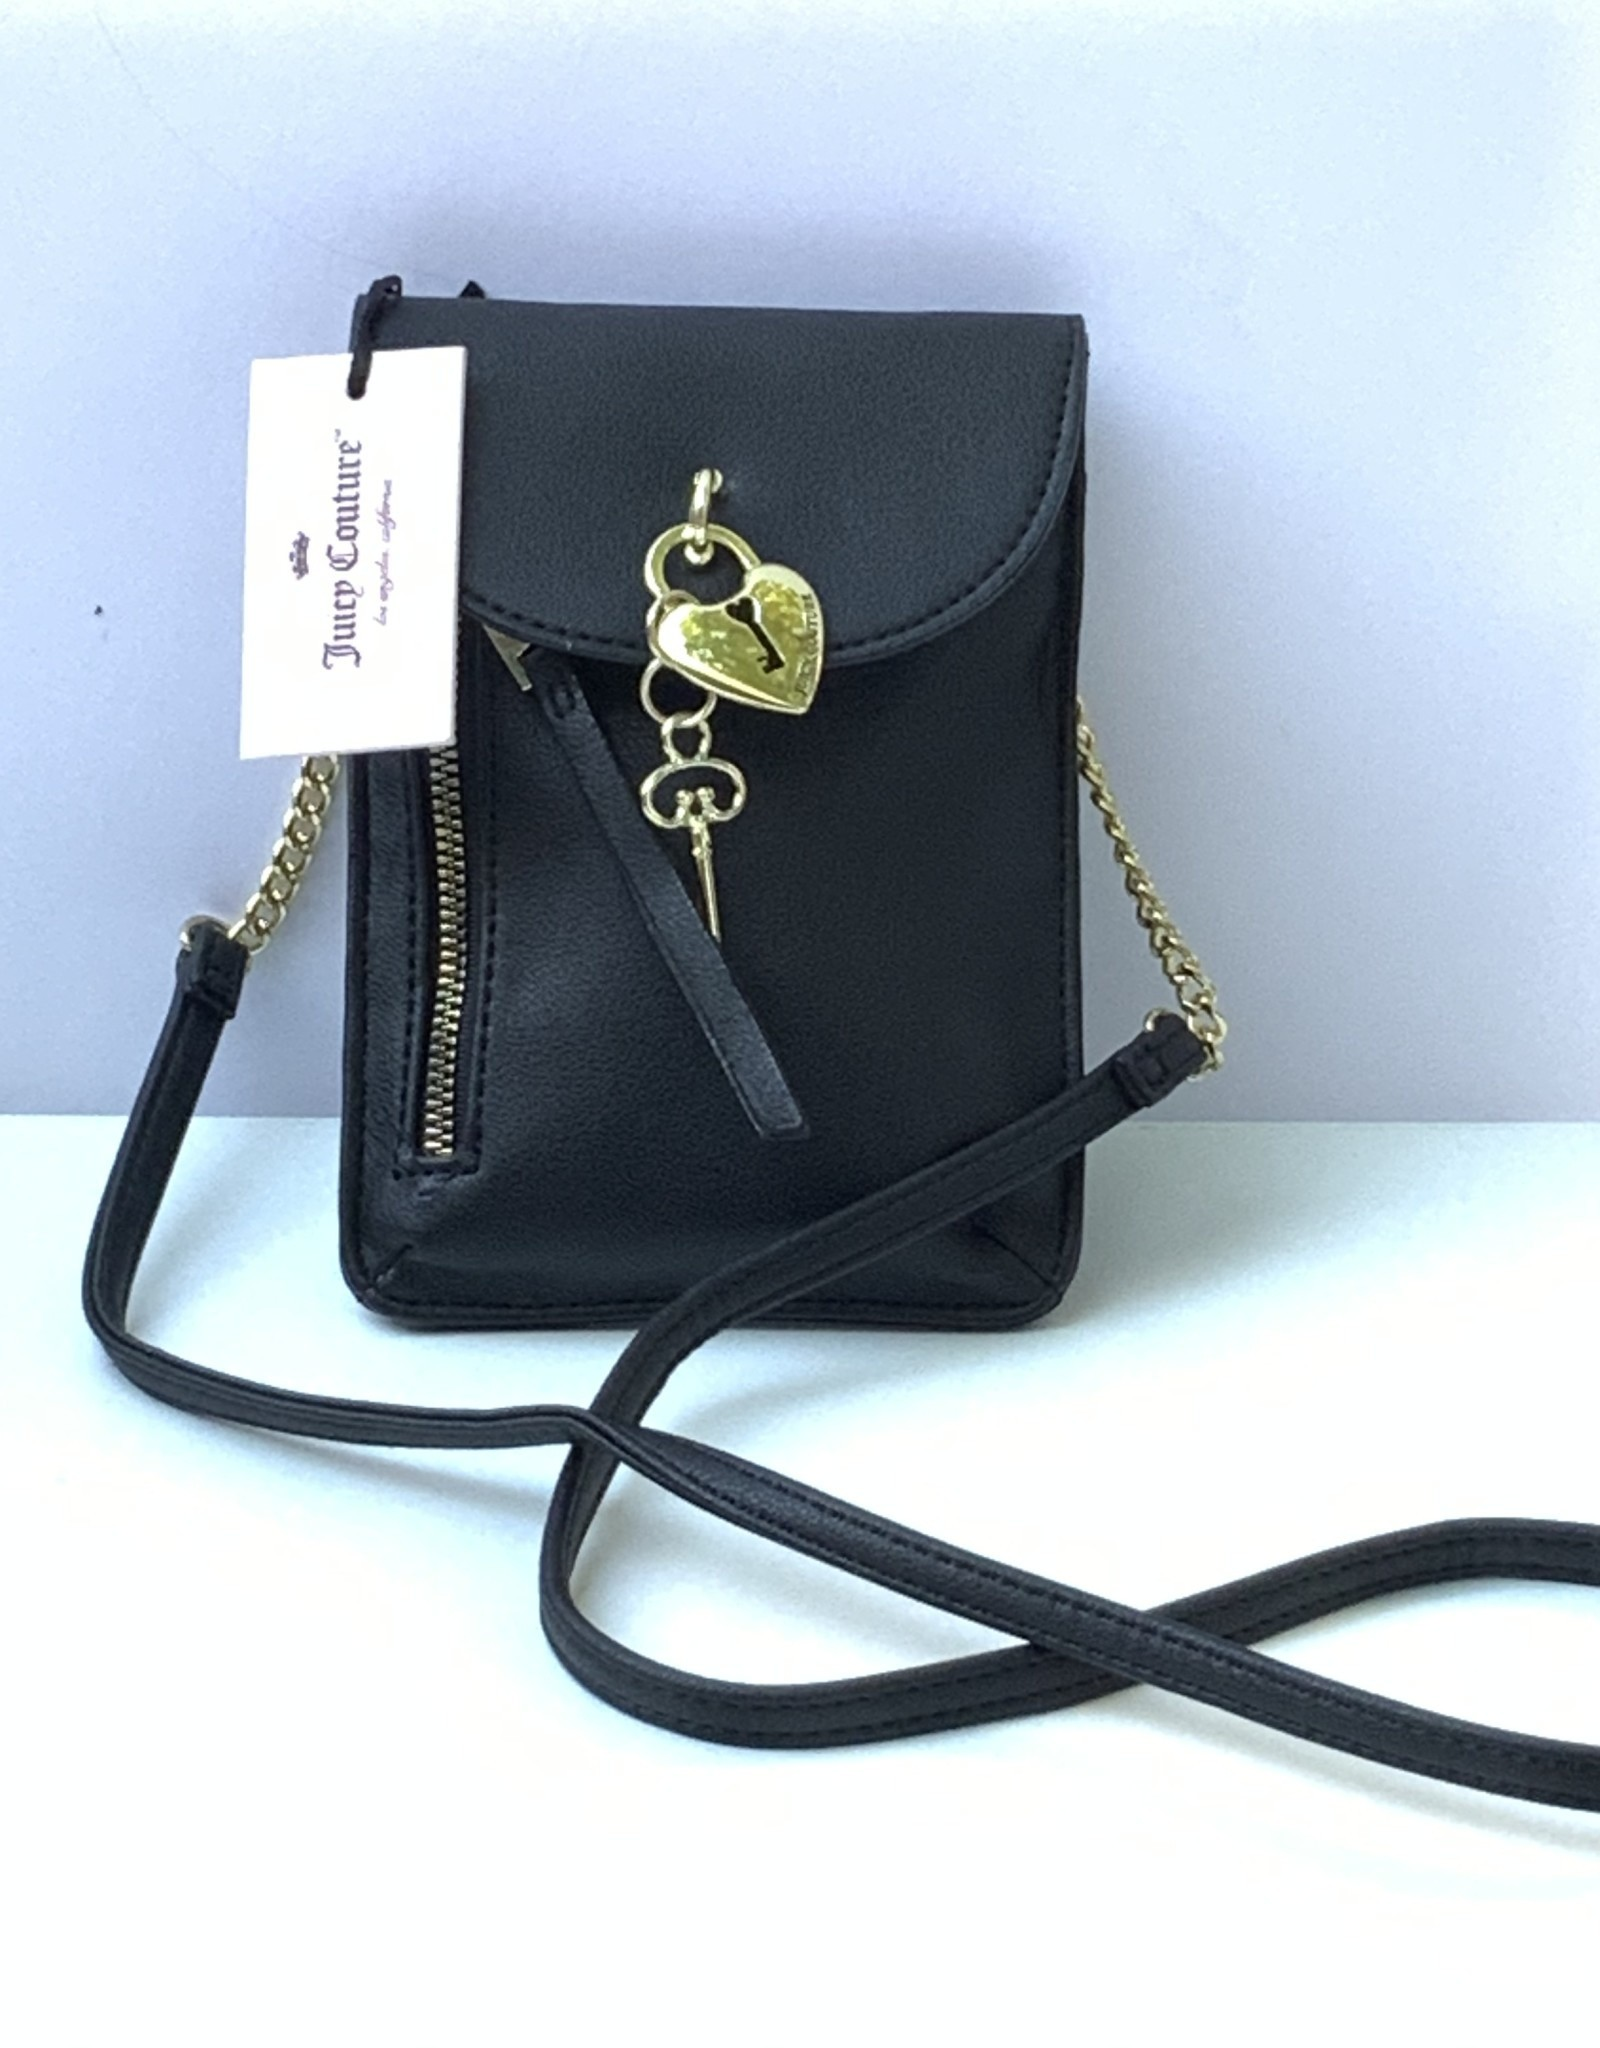 Juicy Couture Juicy Couture Mini Crossbody